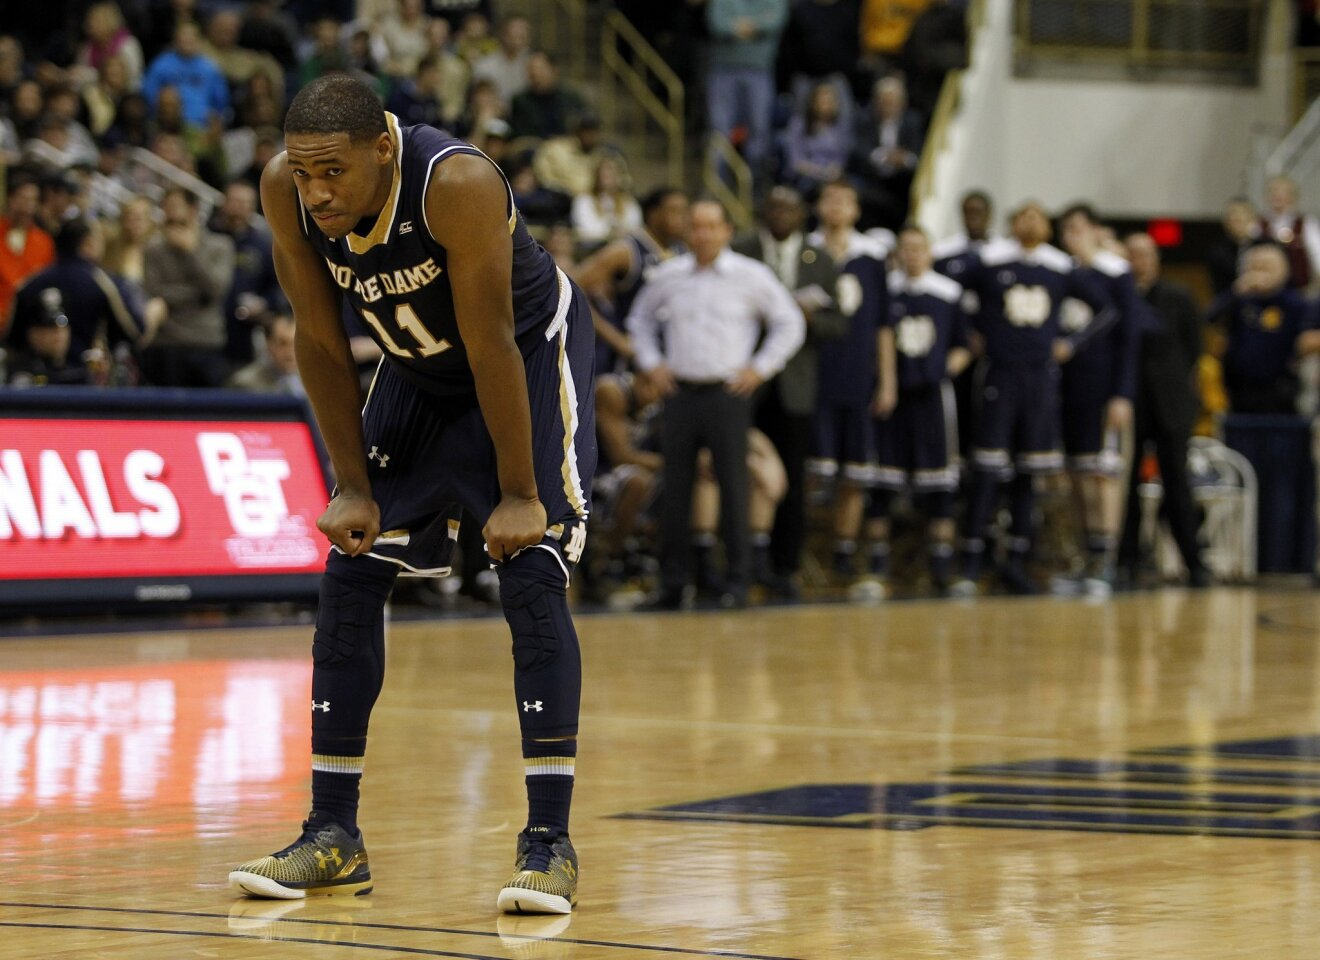 Notre Dame's Demetrius Jackson reacts late in the game.